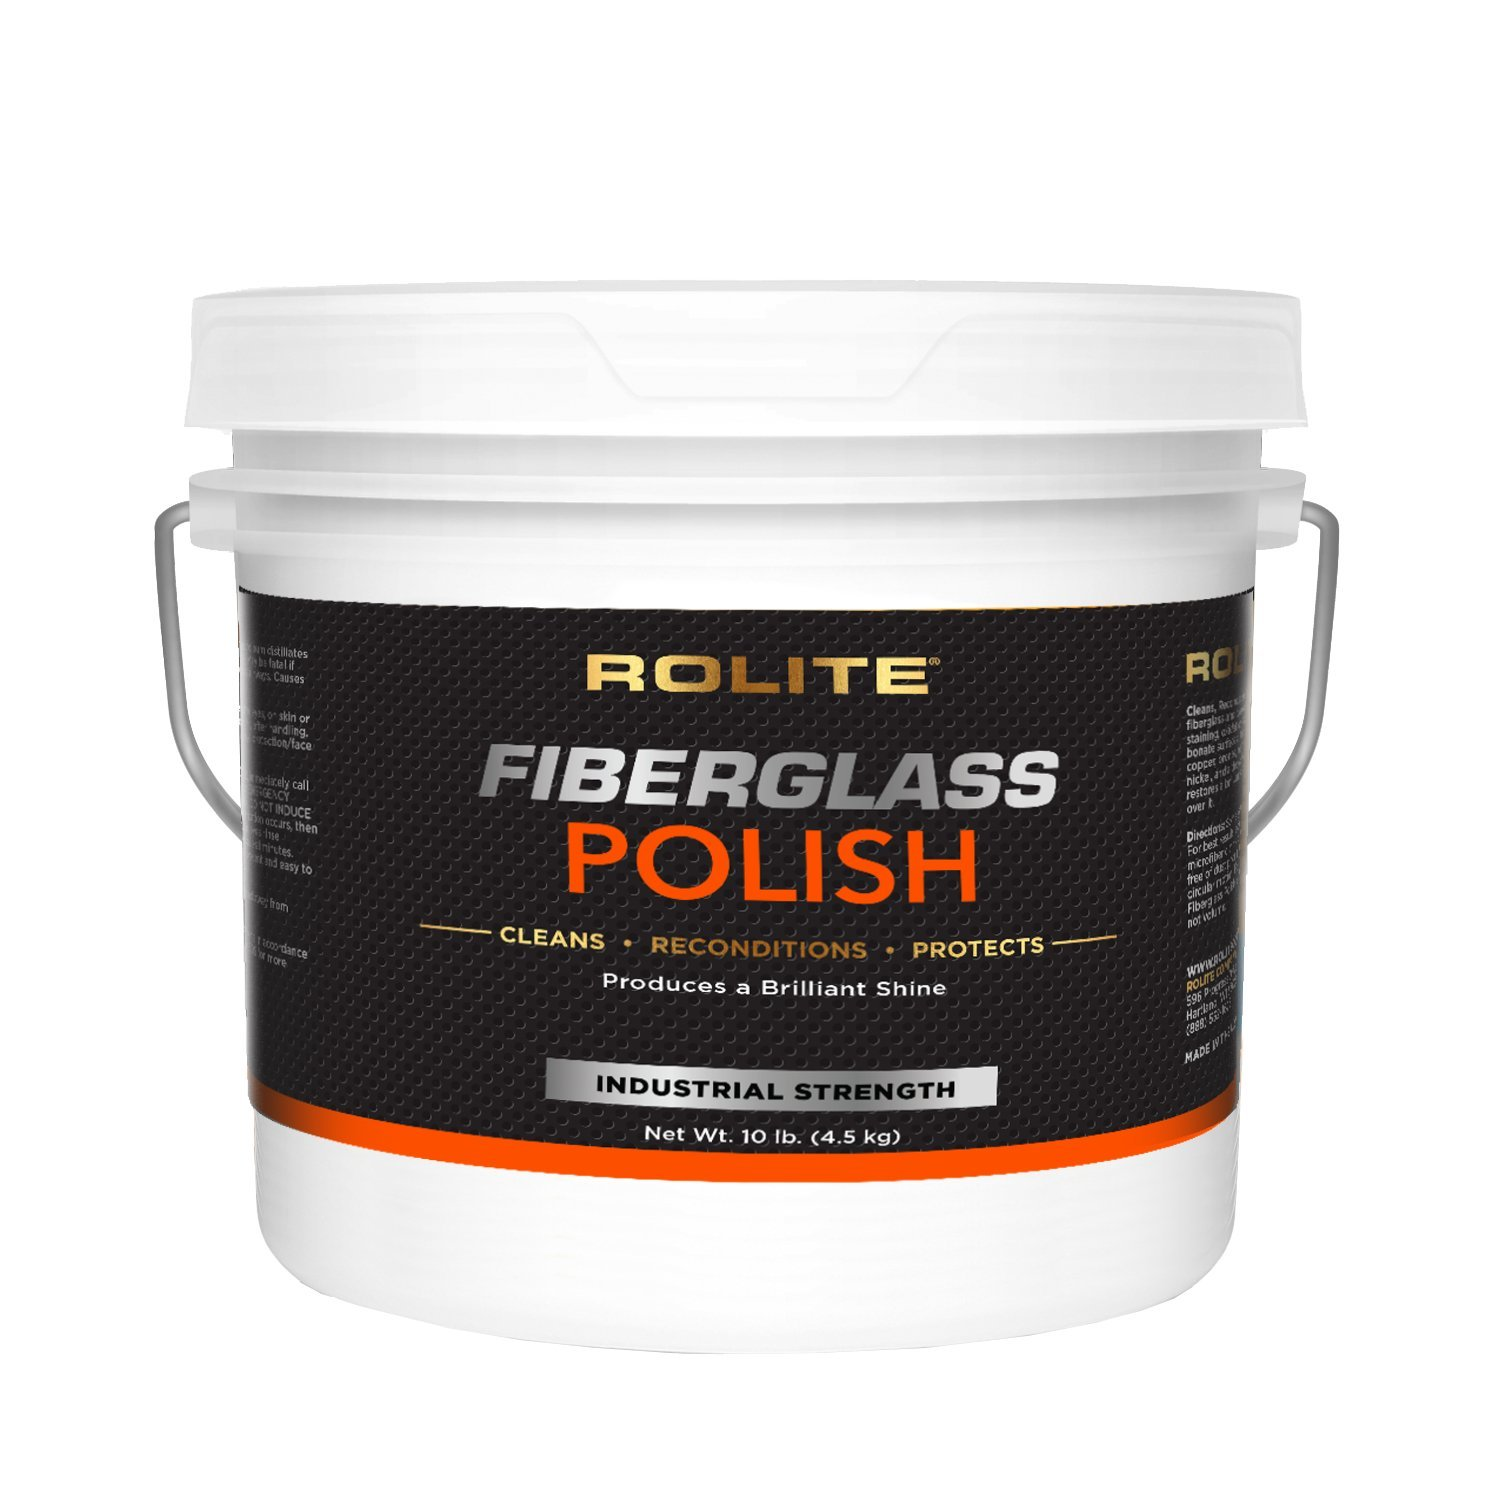 Rolite Fiberglass Polish (10lb) for Removing Water Spots, Staining, Oxidation & Hairline Scratches on Boats, Clearcoat, Acrylic and Polycarbonate